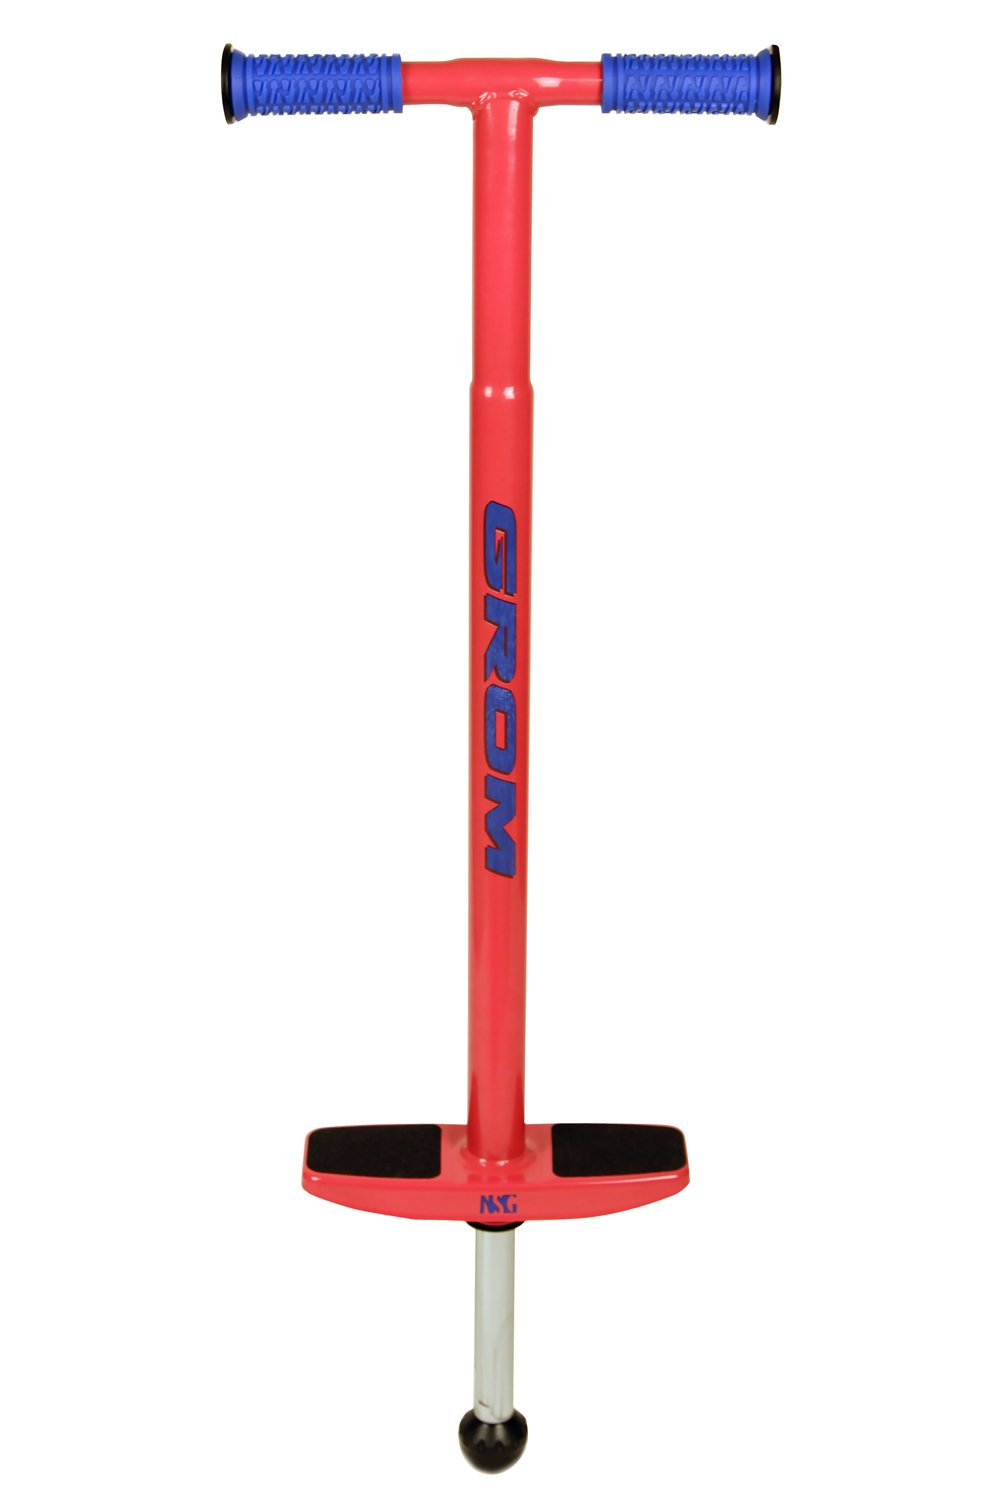 Ybike PG102B NSG Flight Pogo Stick, Black National Sporting Goods